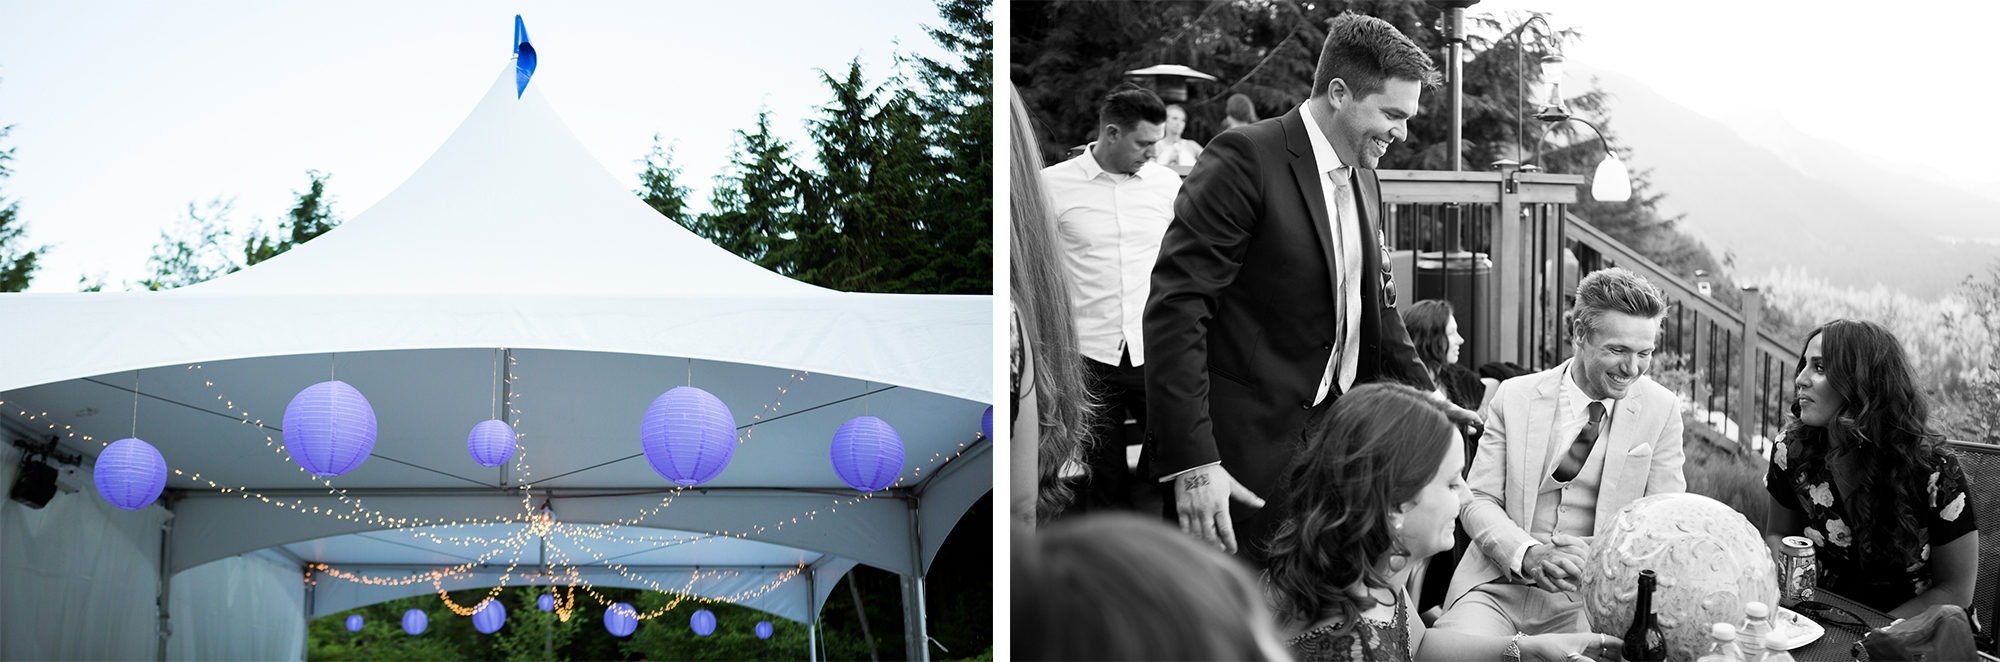 Reception Tent Hope Wedding British Columbia American Creek Lodge Zsuzsi Pal Photography